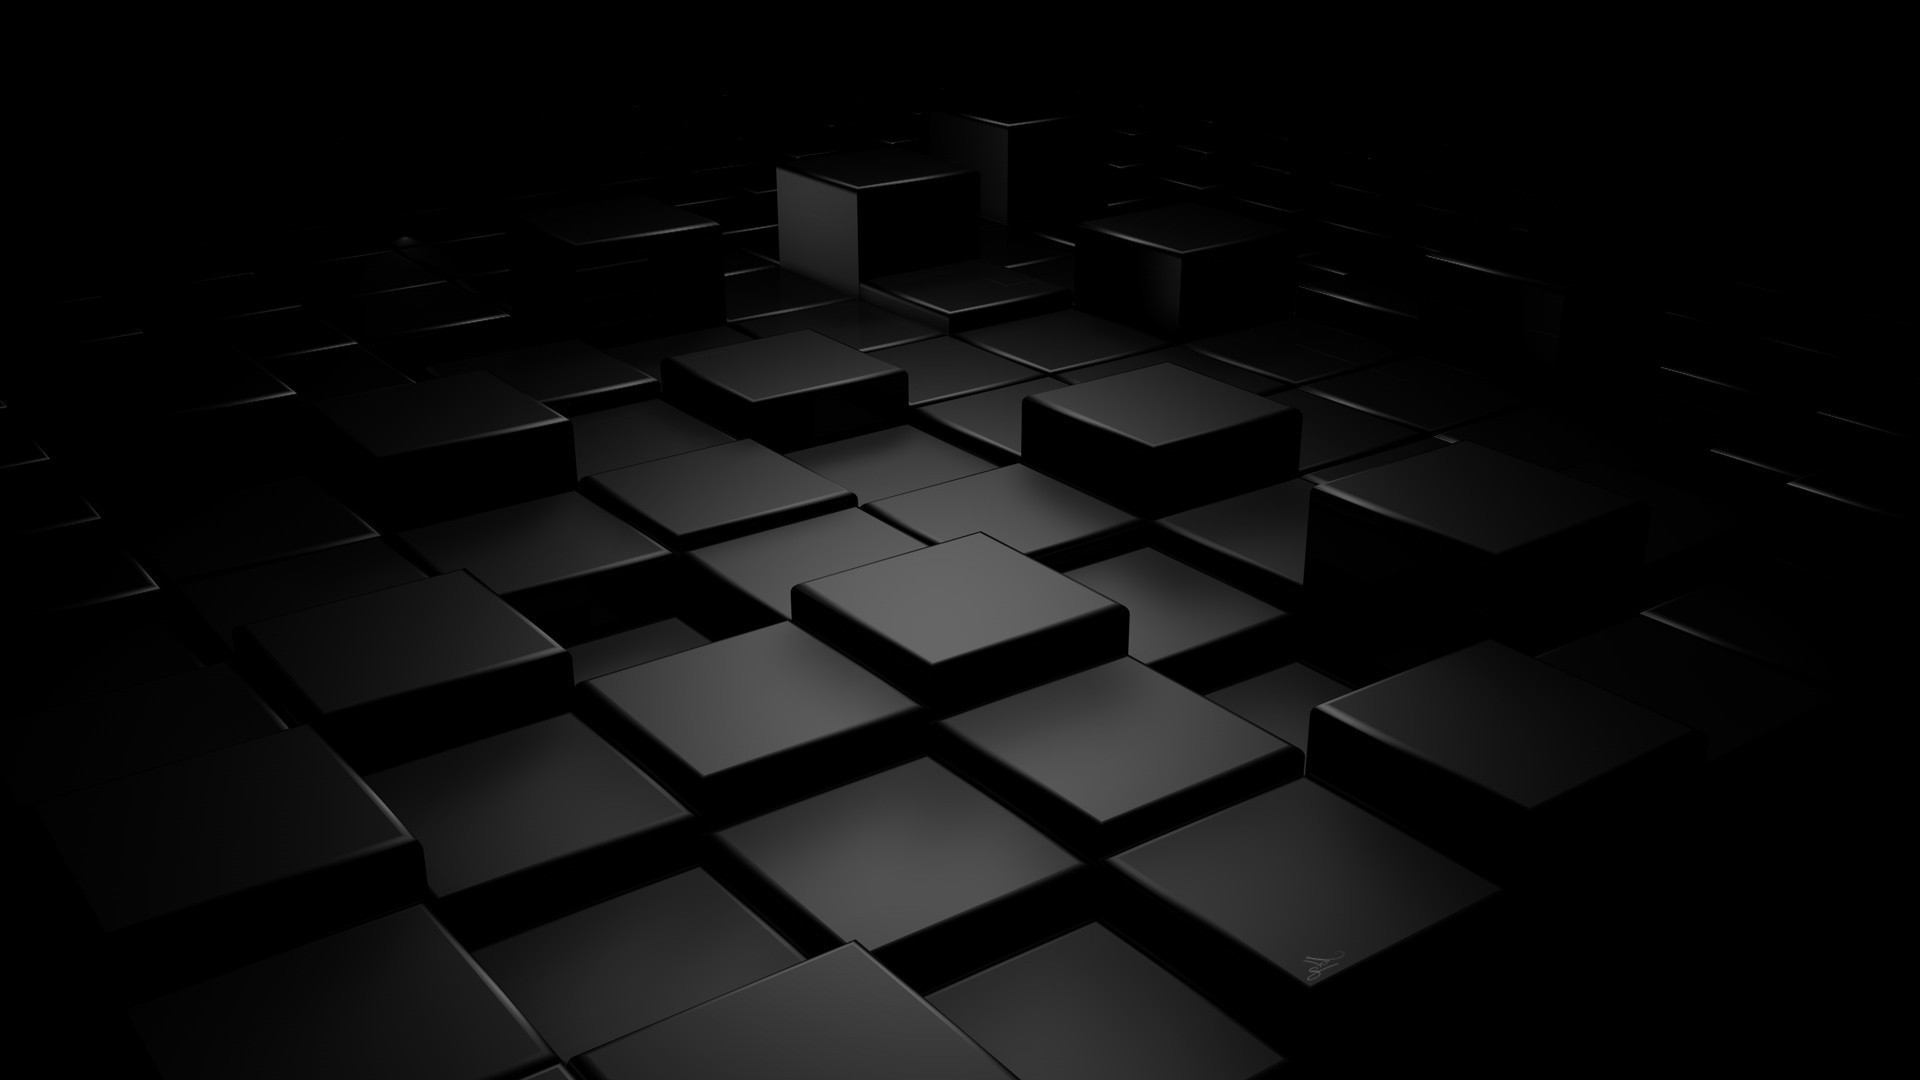 3D Black Wallpaper